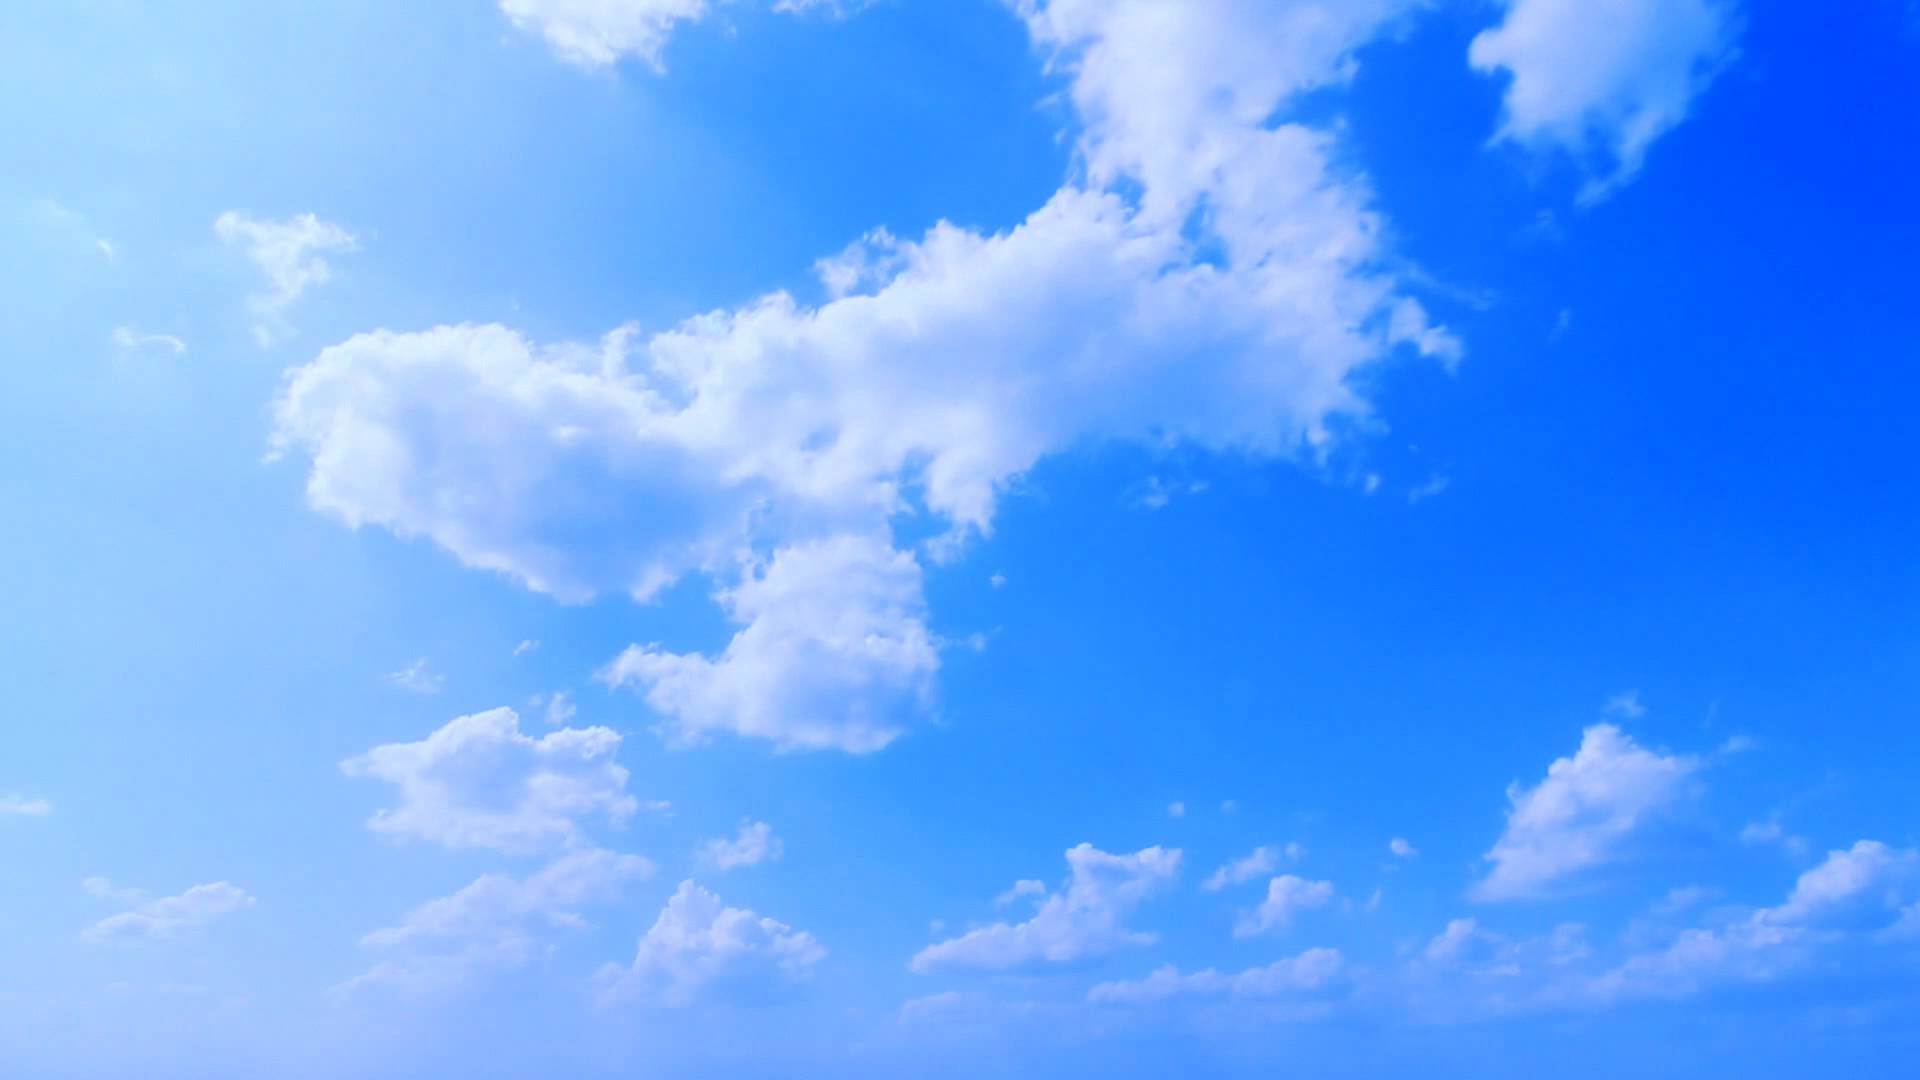 Experience the Freedom With Blue Sky Wallpaper